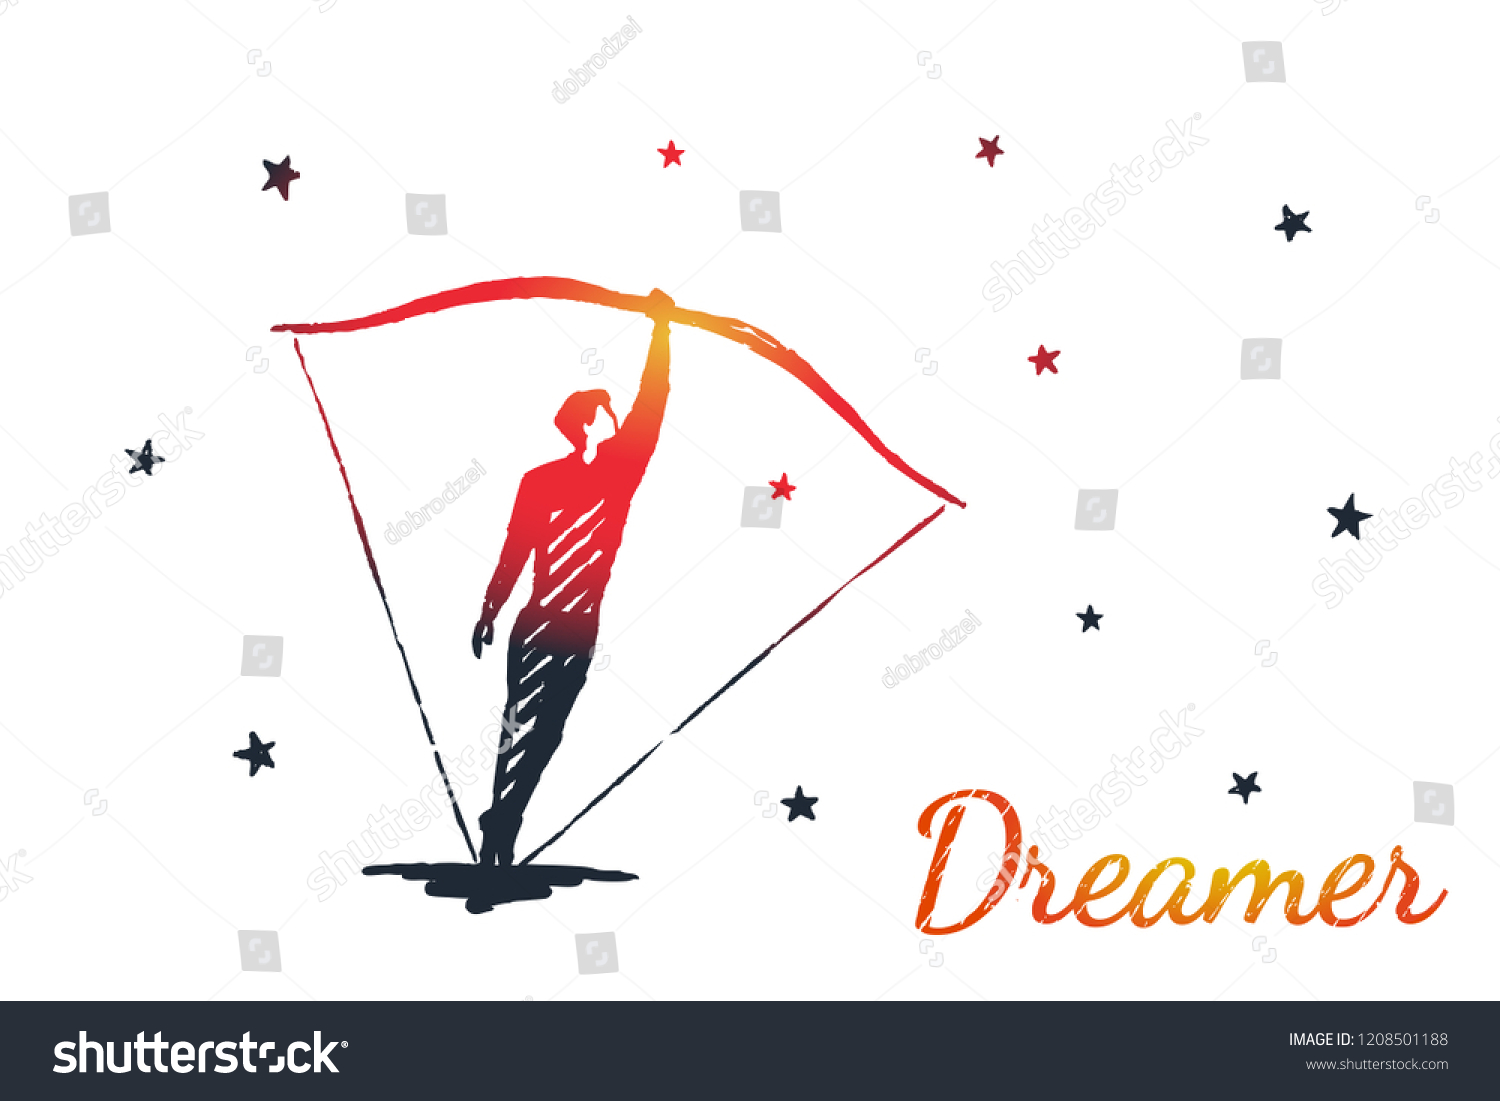 Dreamer Concept Art Sketch Man Instead Stock Vector Royalty Free